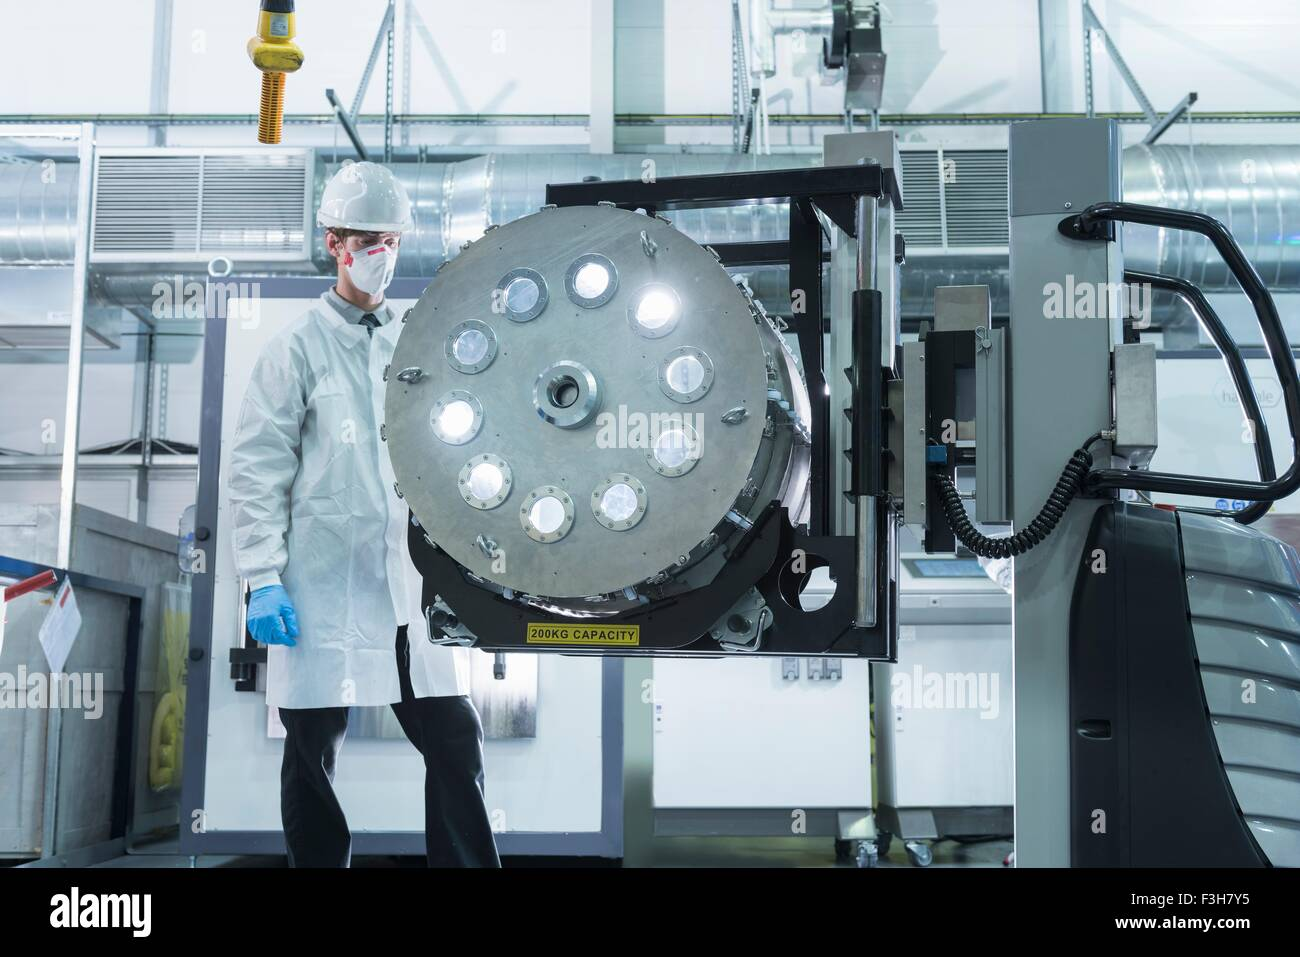 Graphene nanomaterial manufacturing environment in graphene processing factory - Stock Image